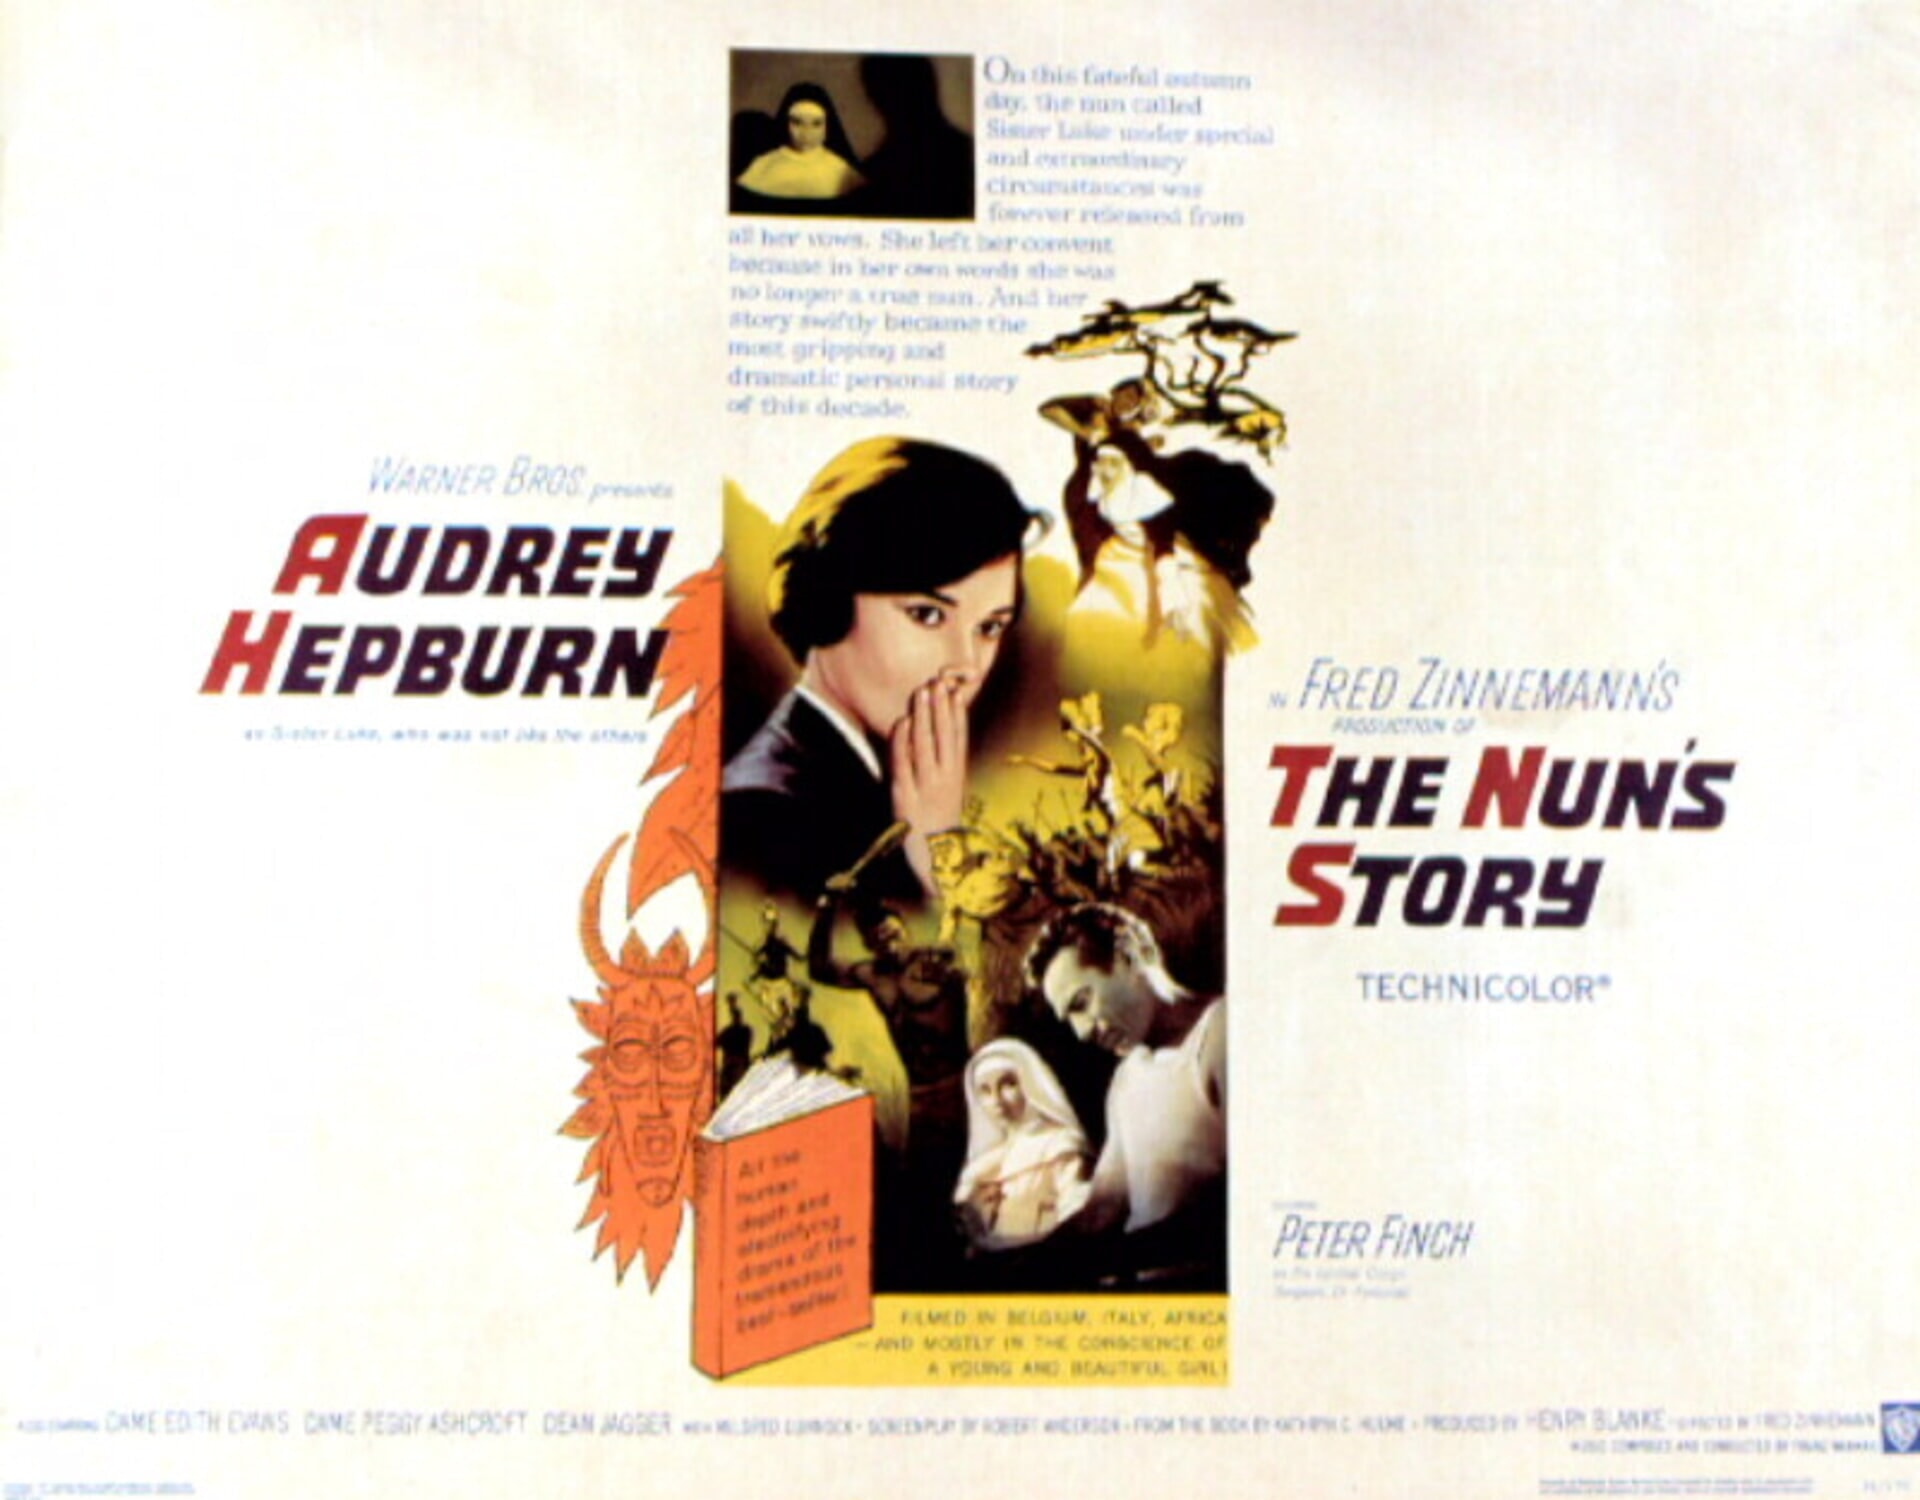 The Nun's Story - Poster 3